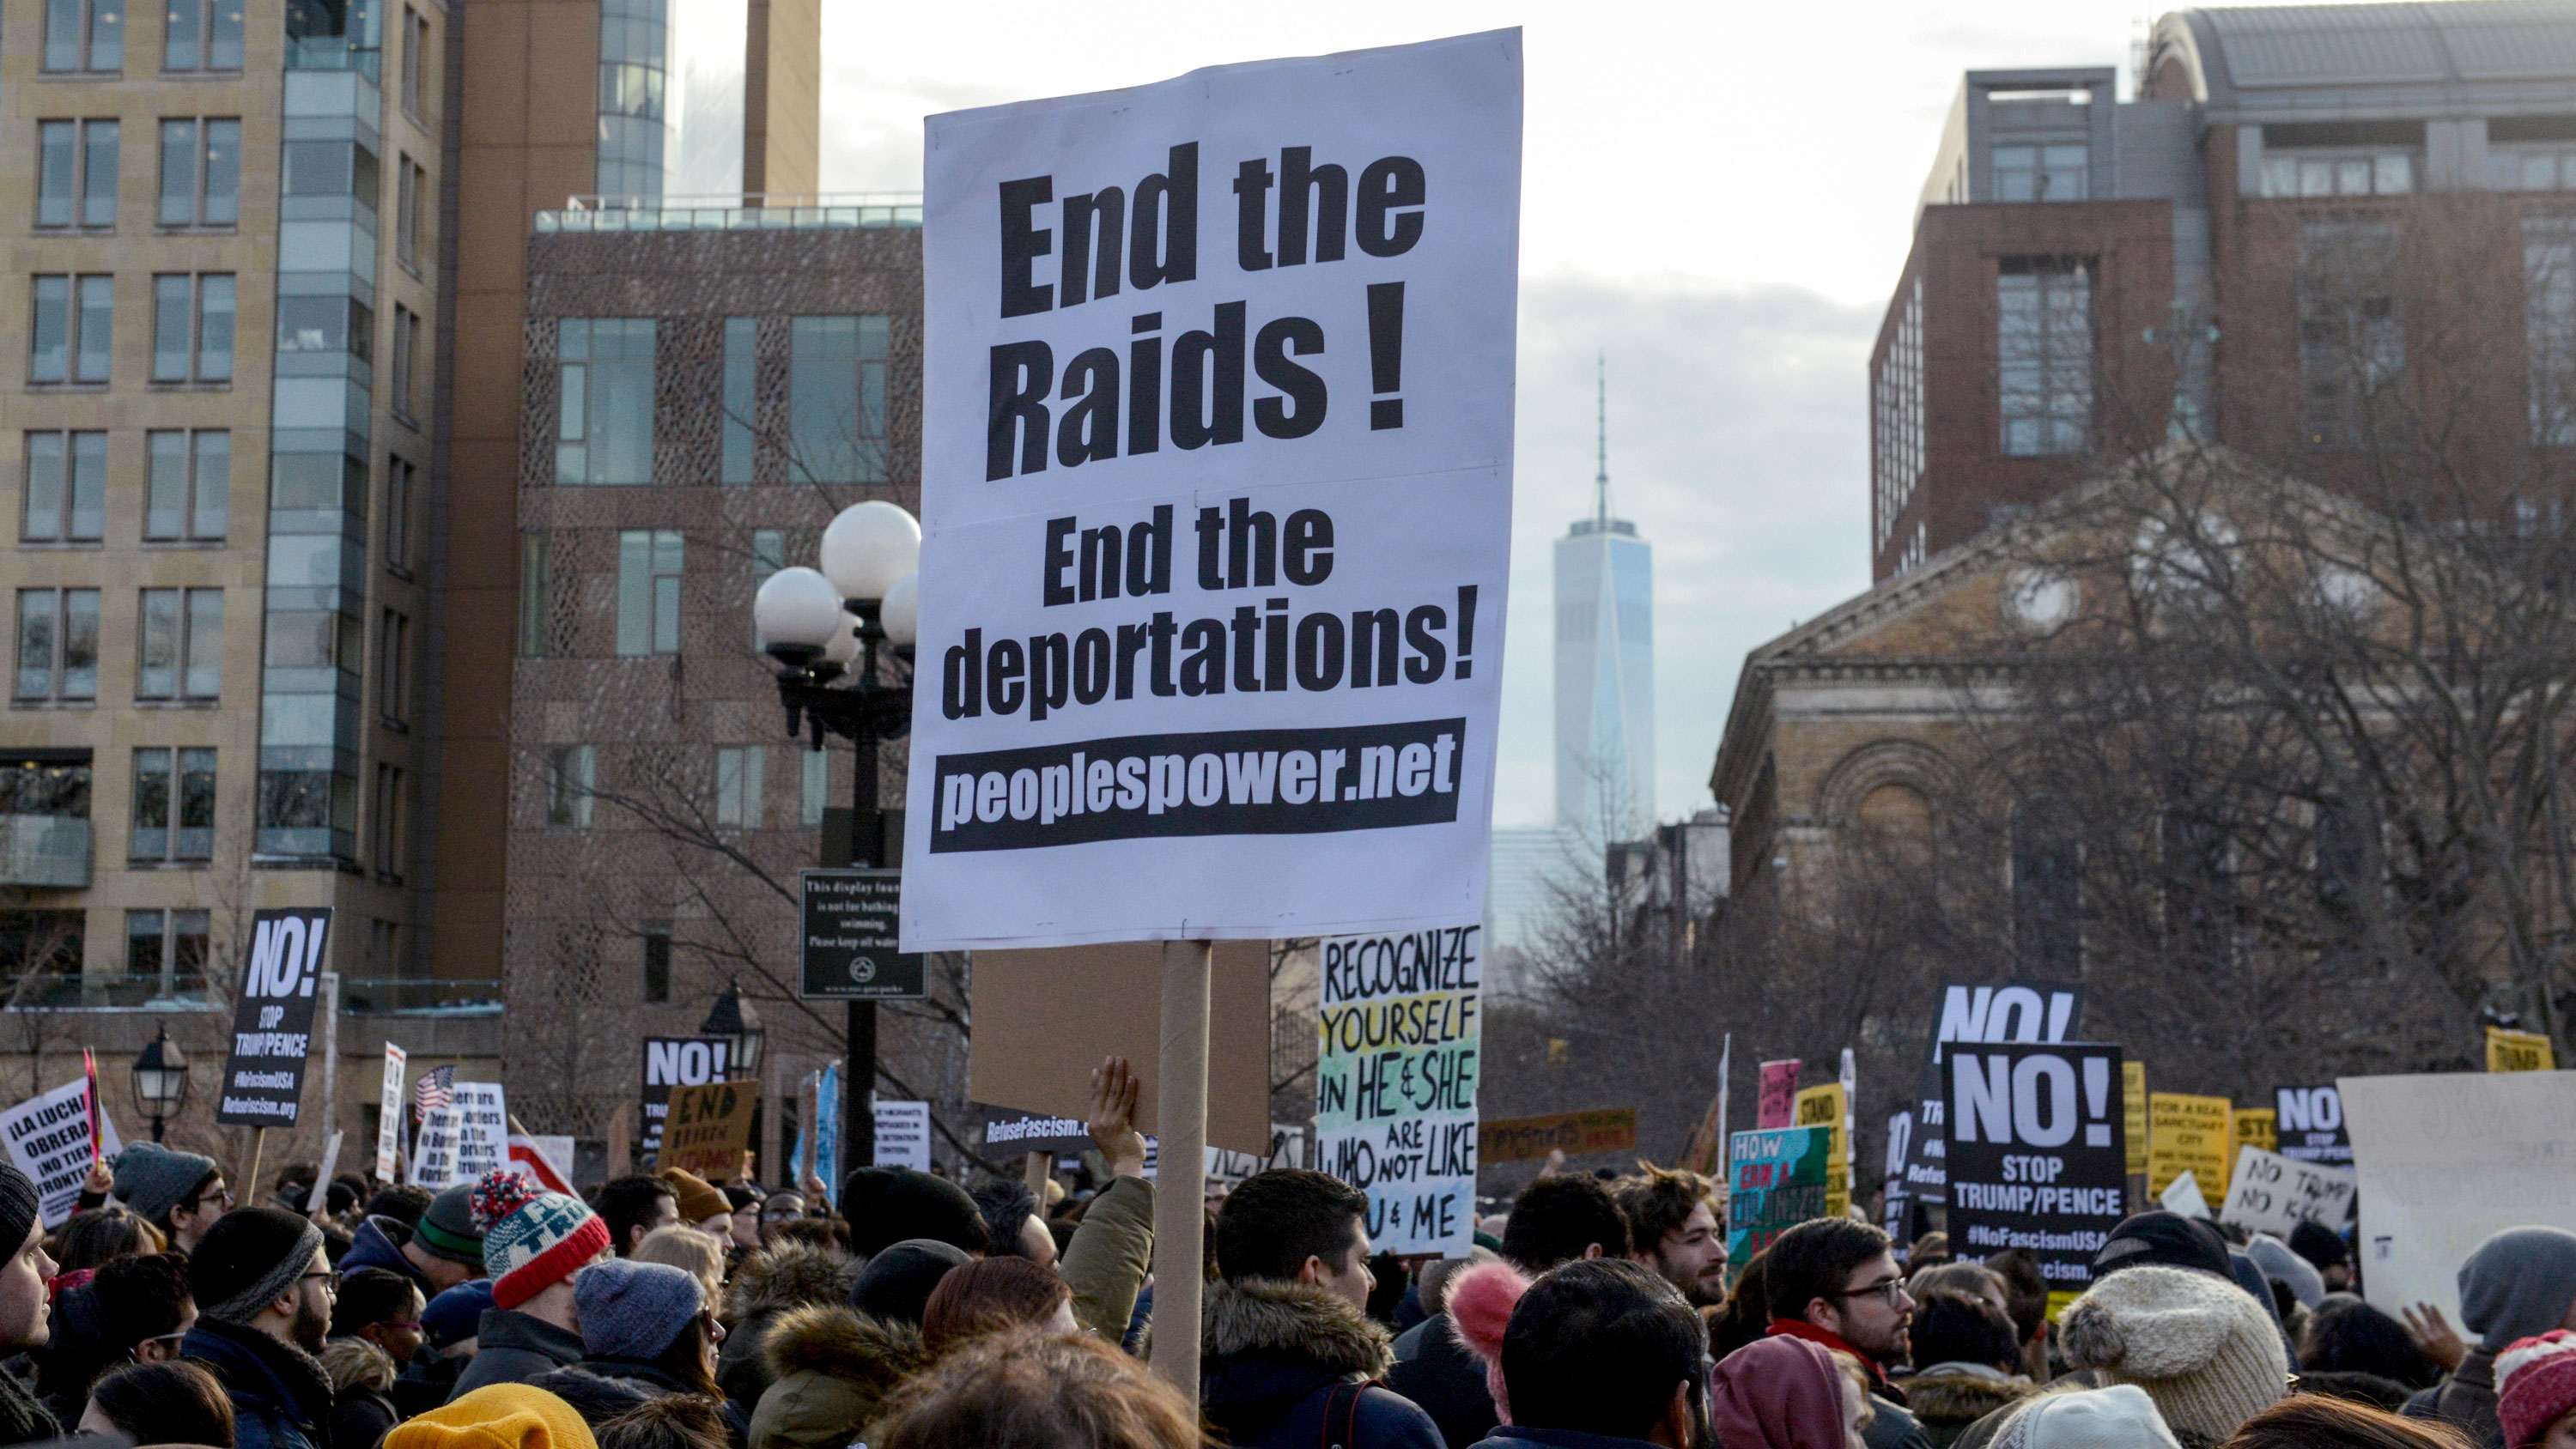 A sign at a February protest in New York City calls to end immigration raids and deportations.